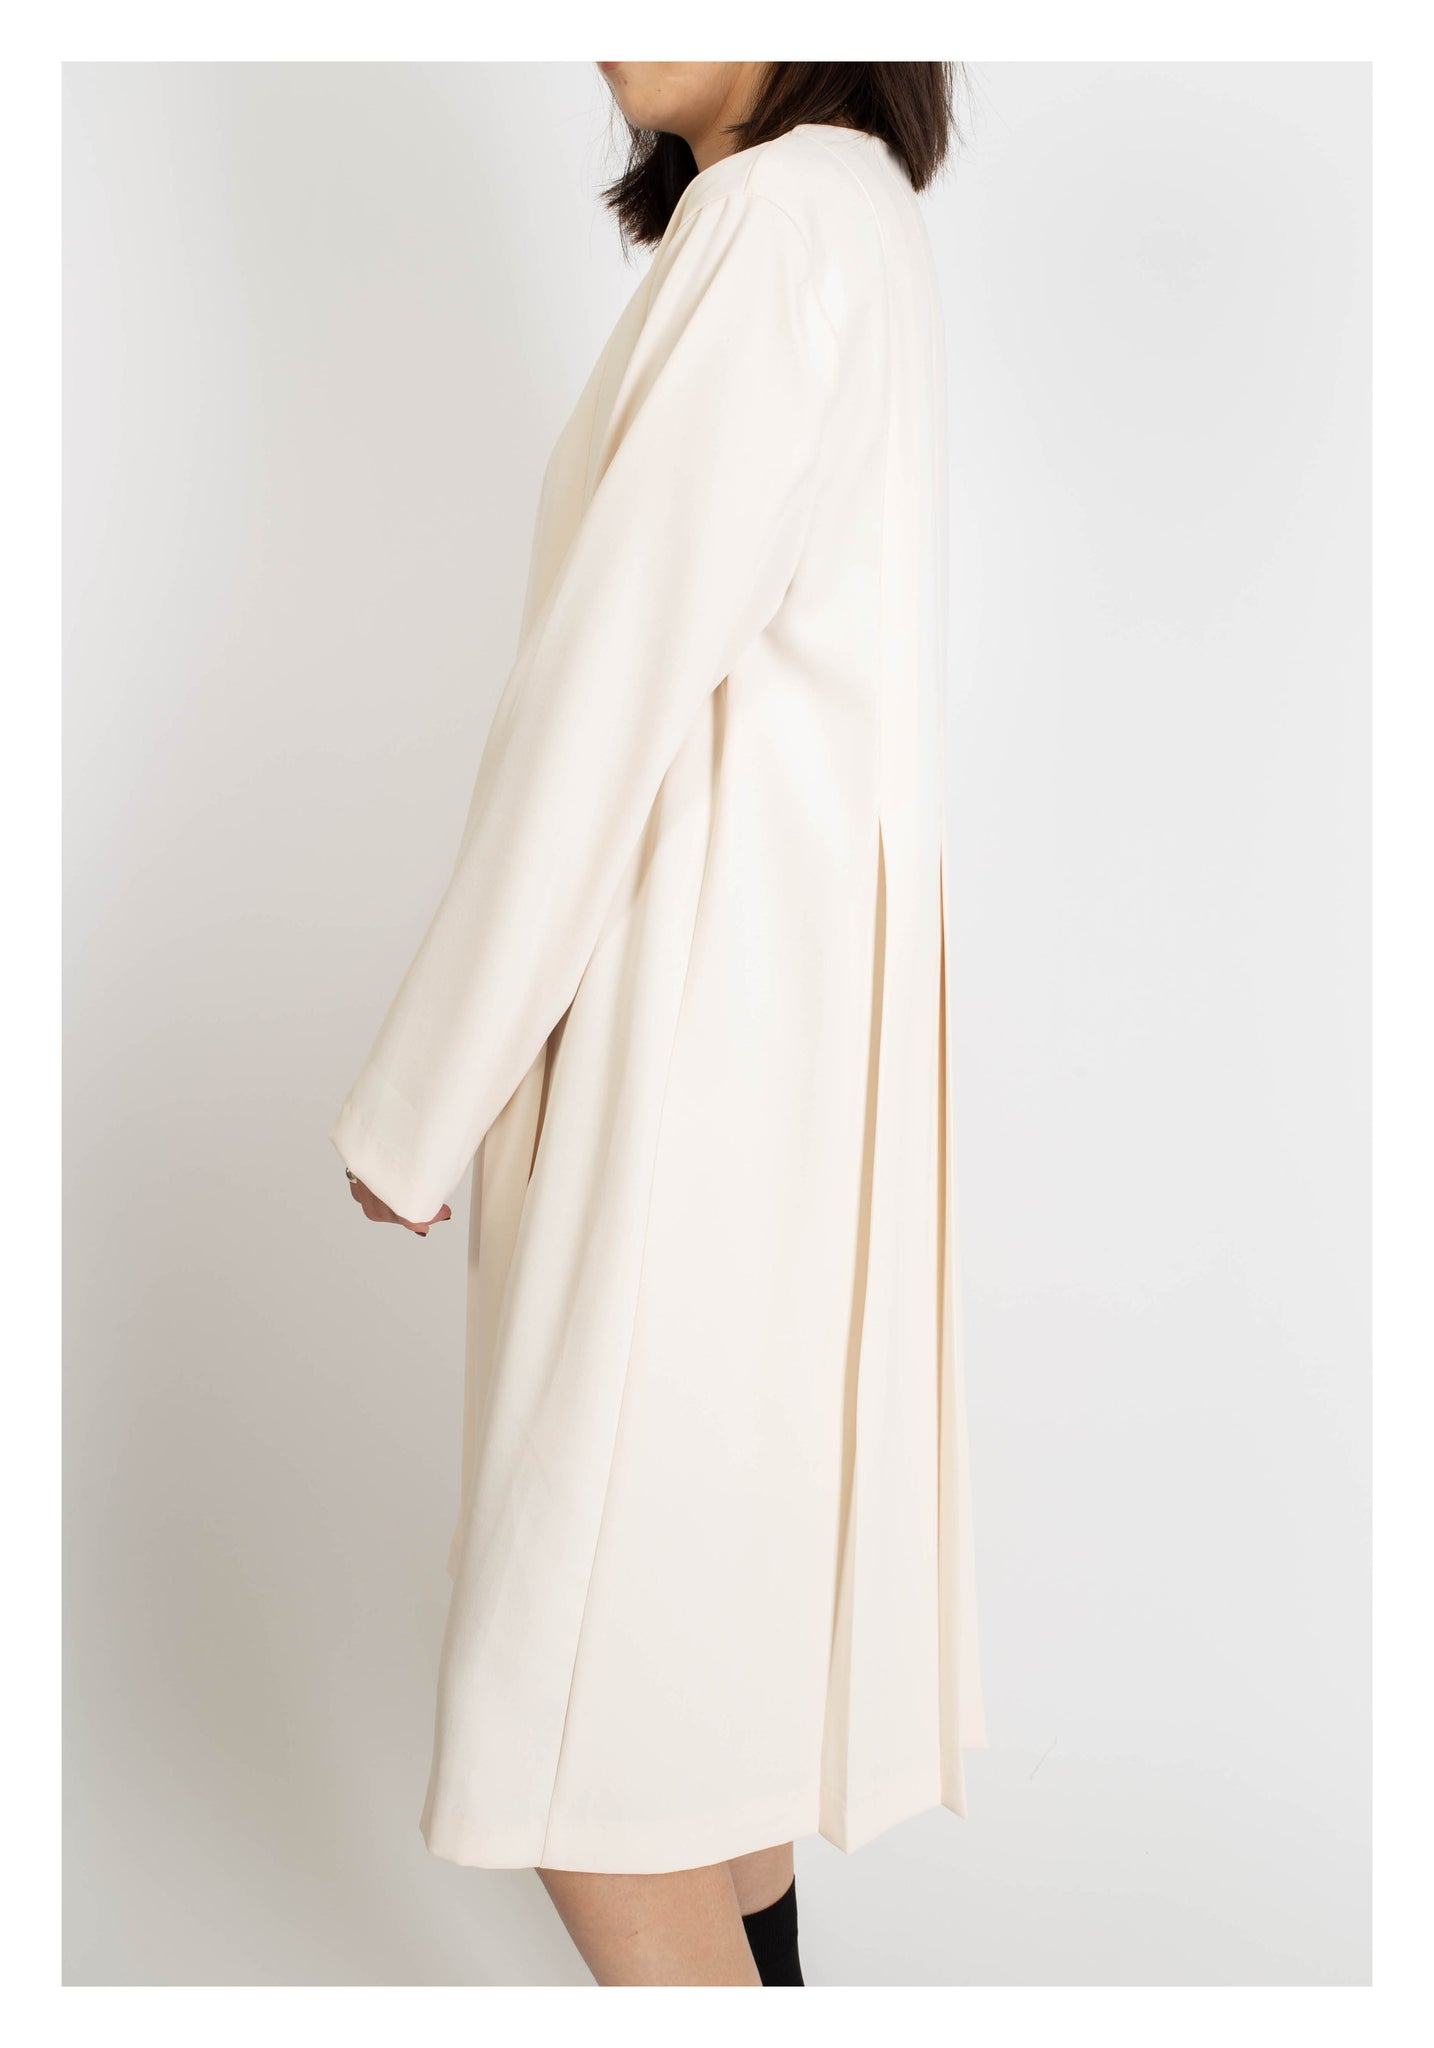 Full Box Pleated Dress White - whoami